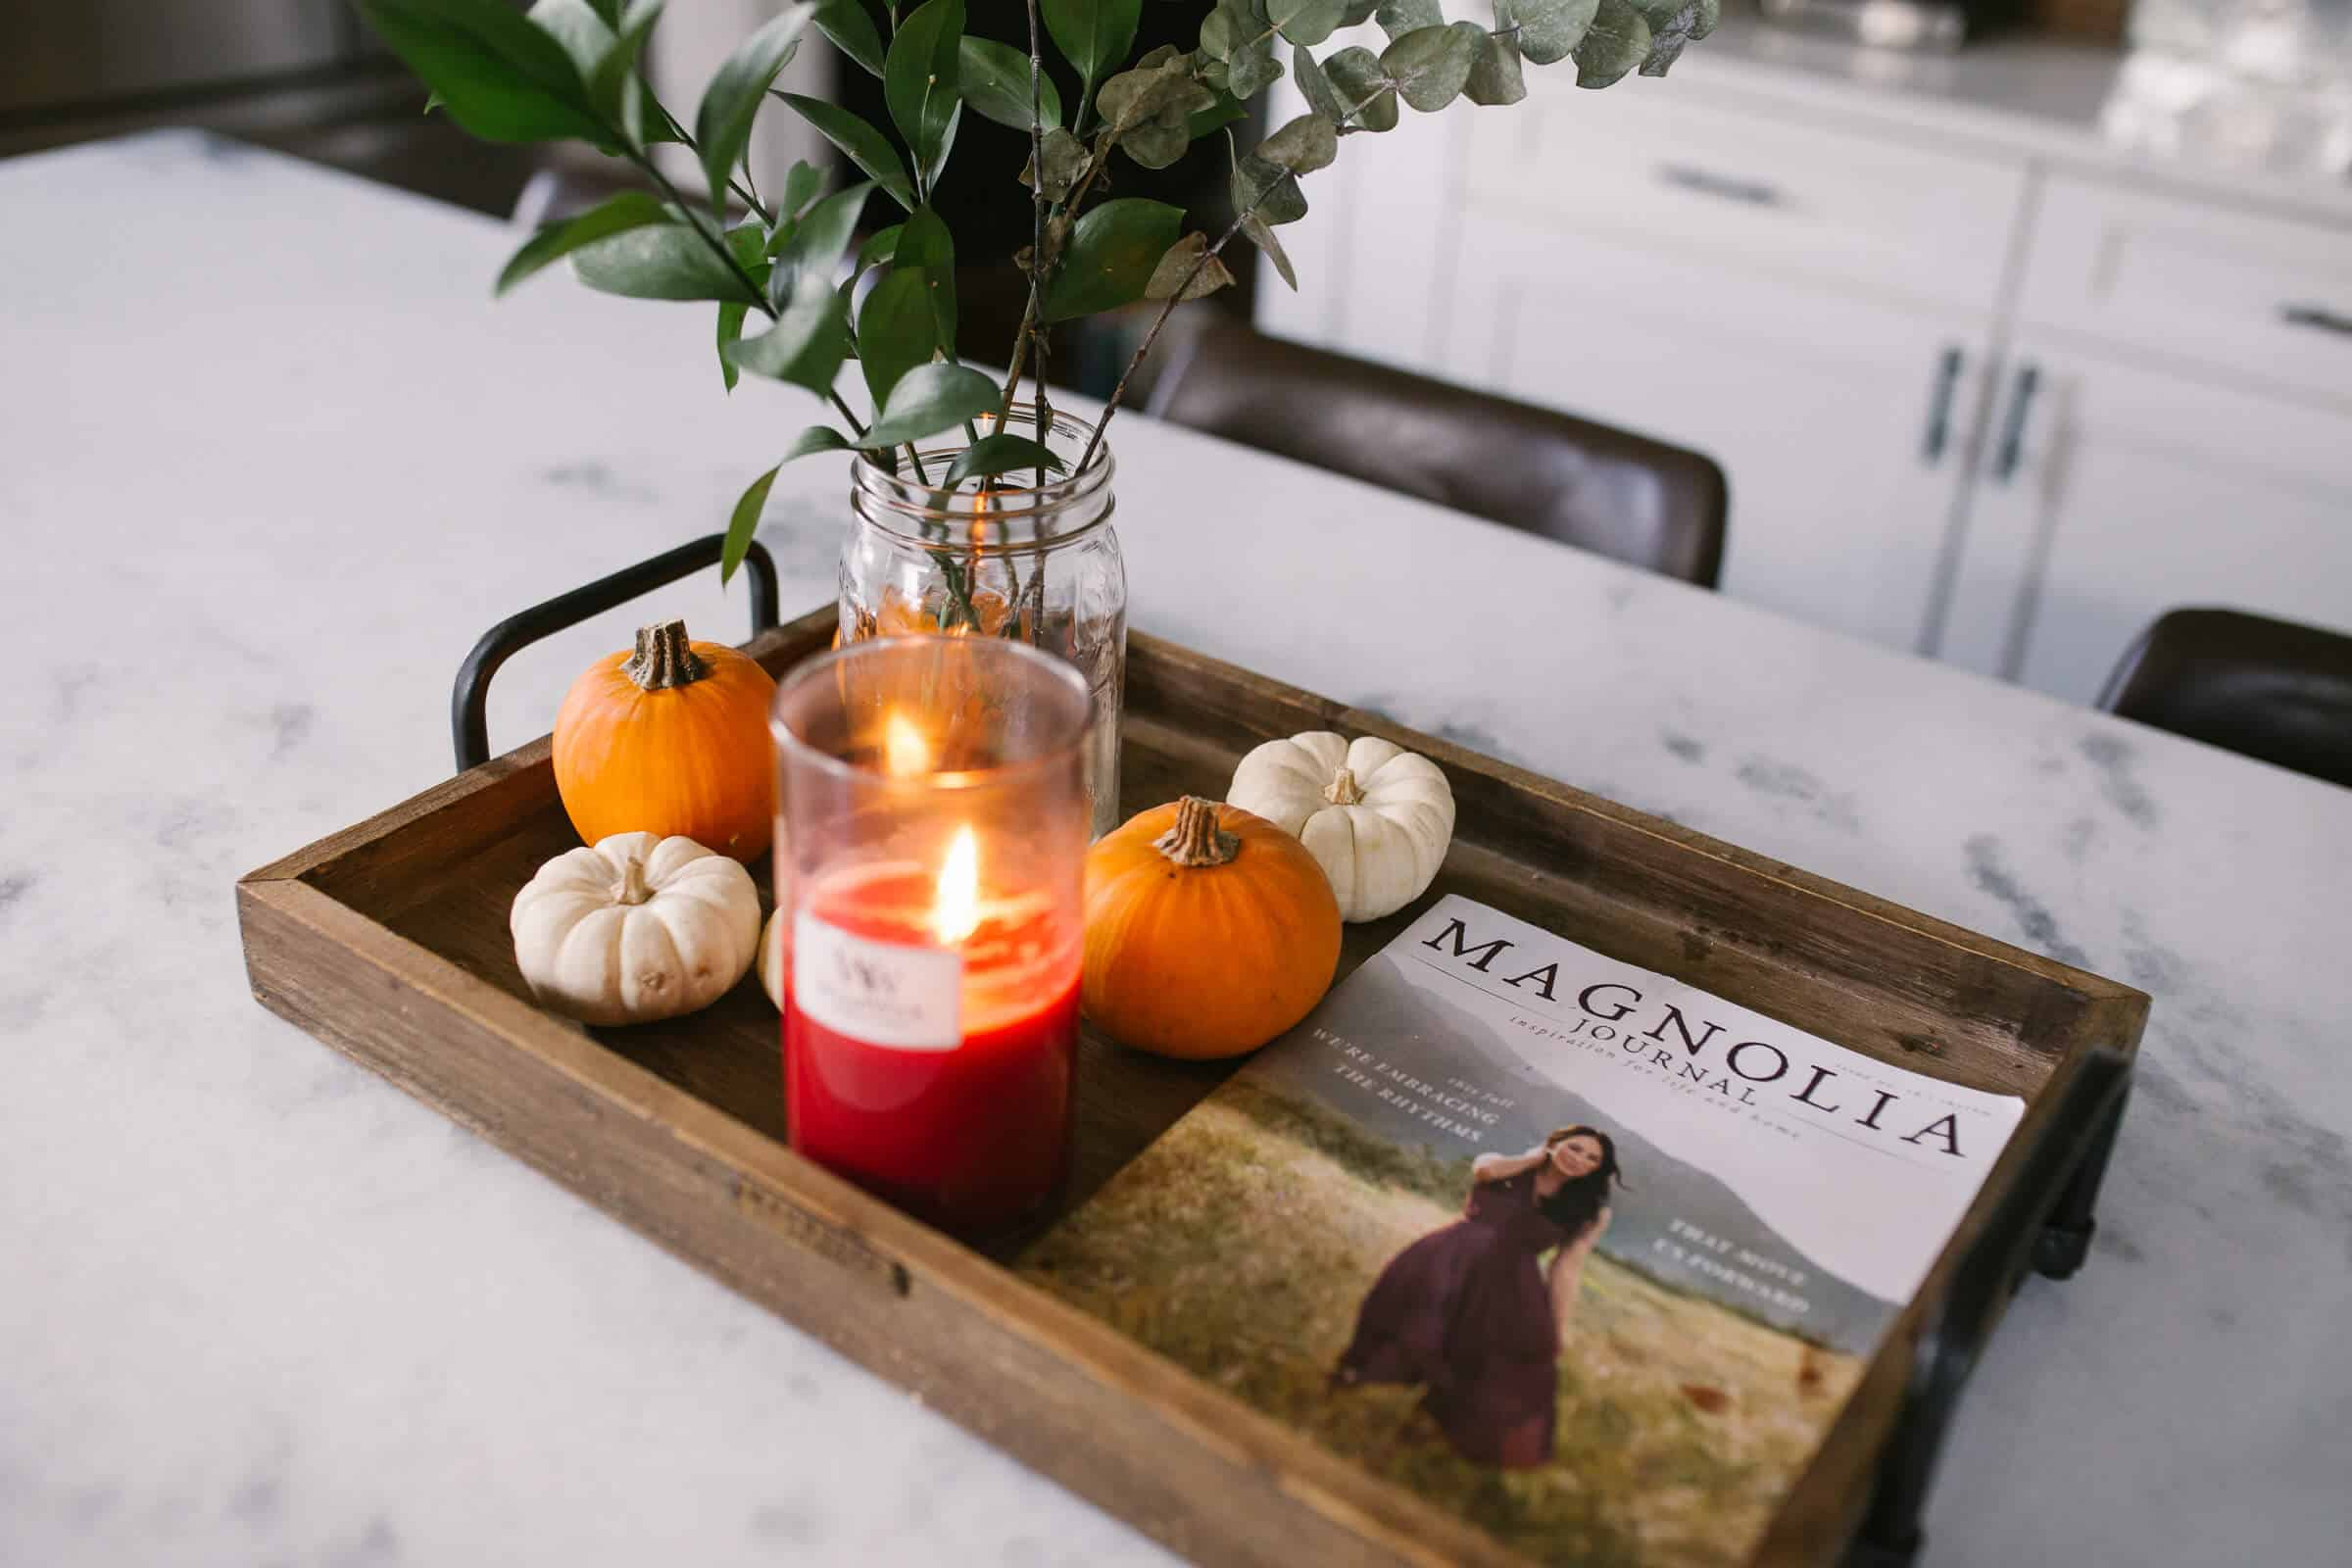 wood tray in kitchen on marble countertops with magnolia journal